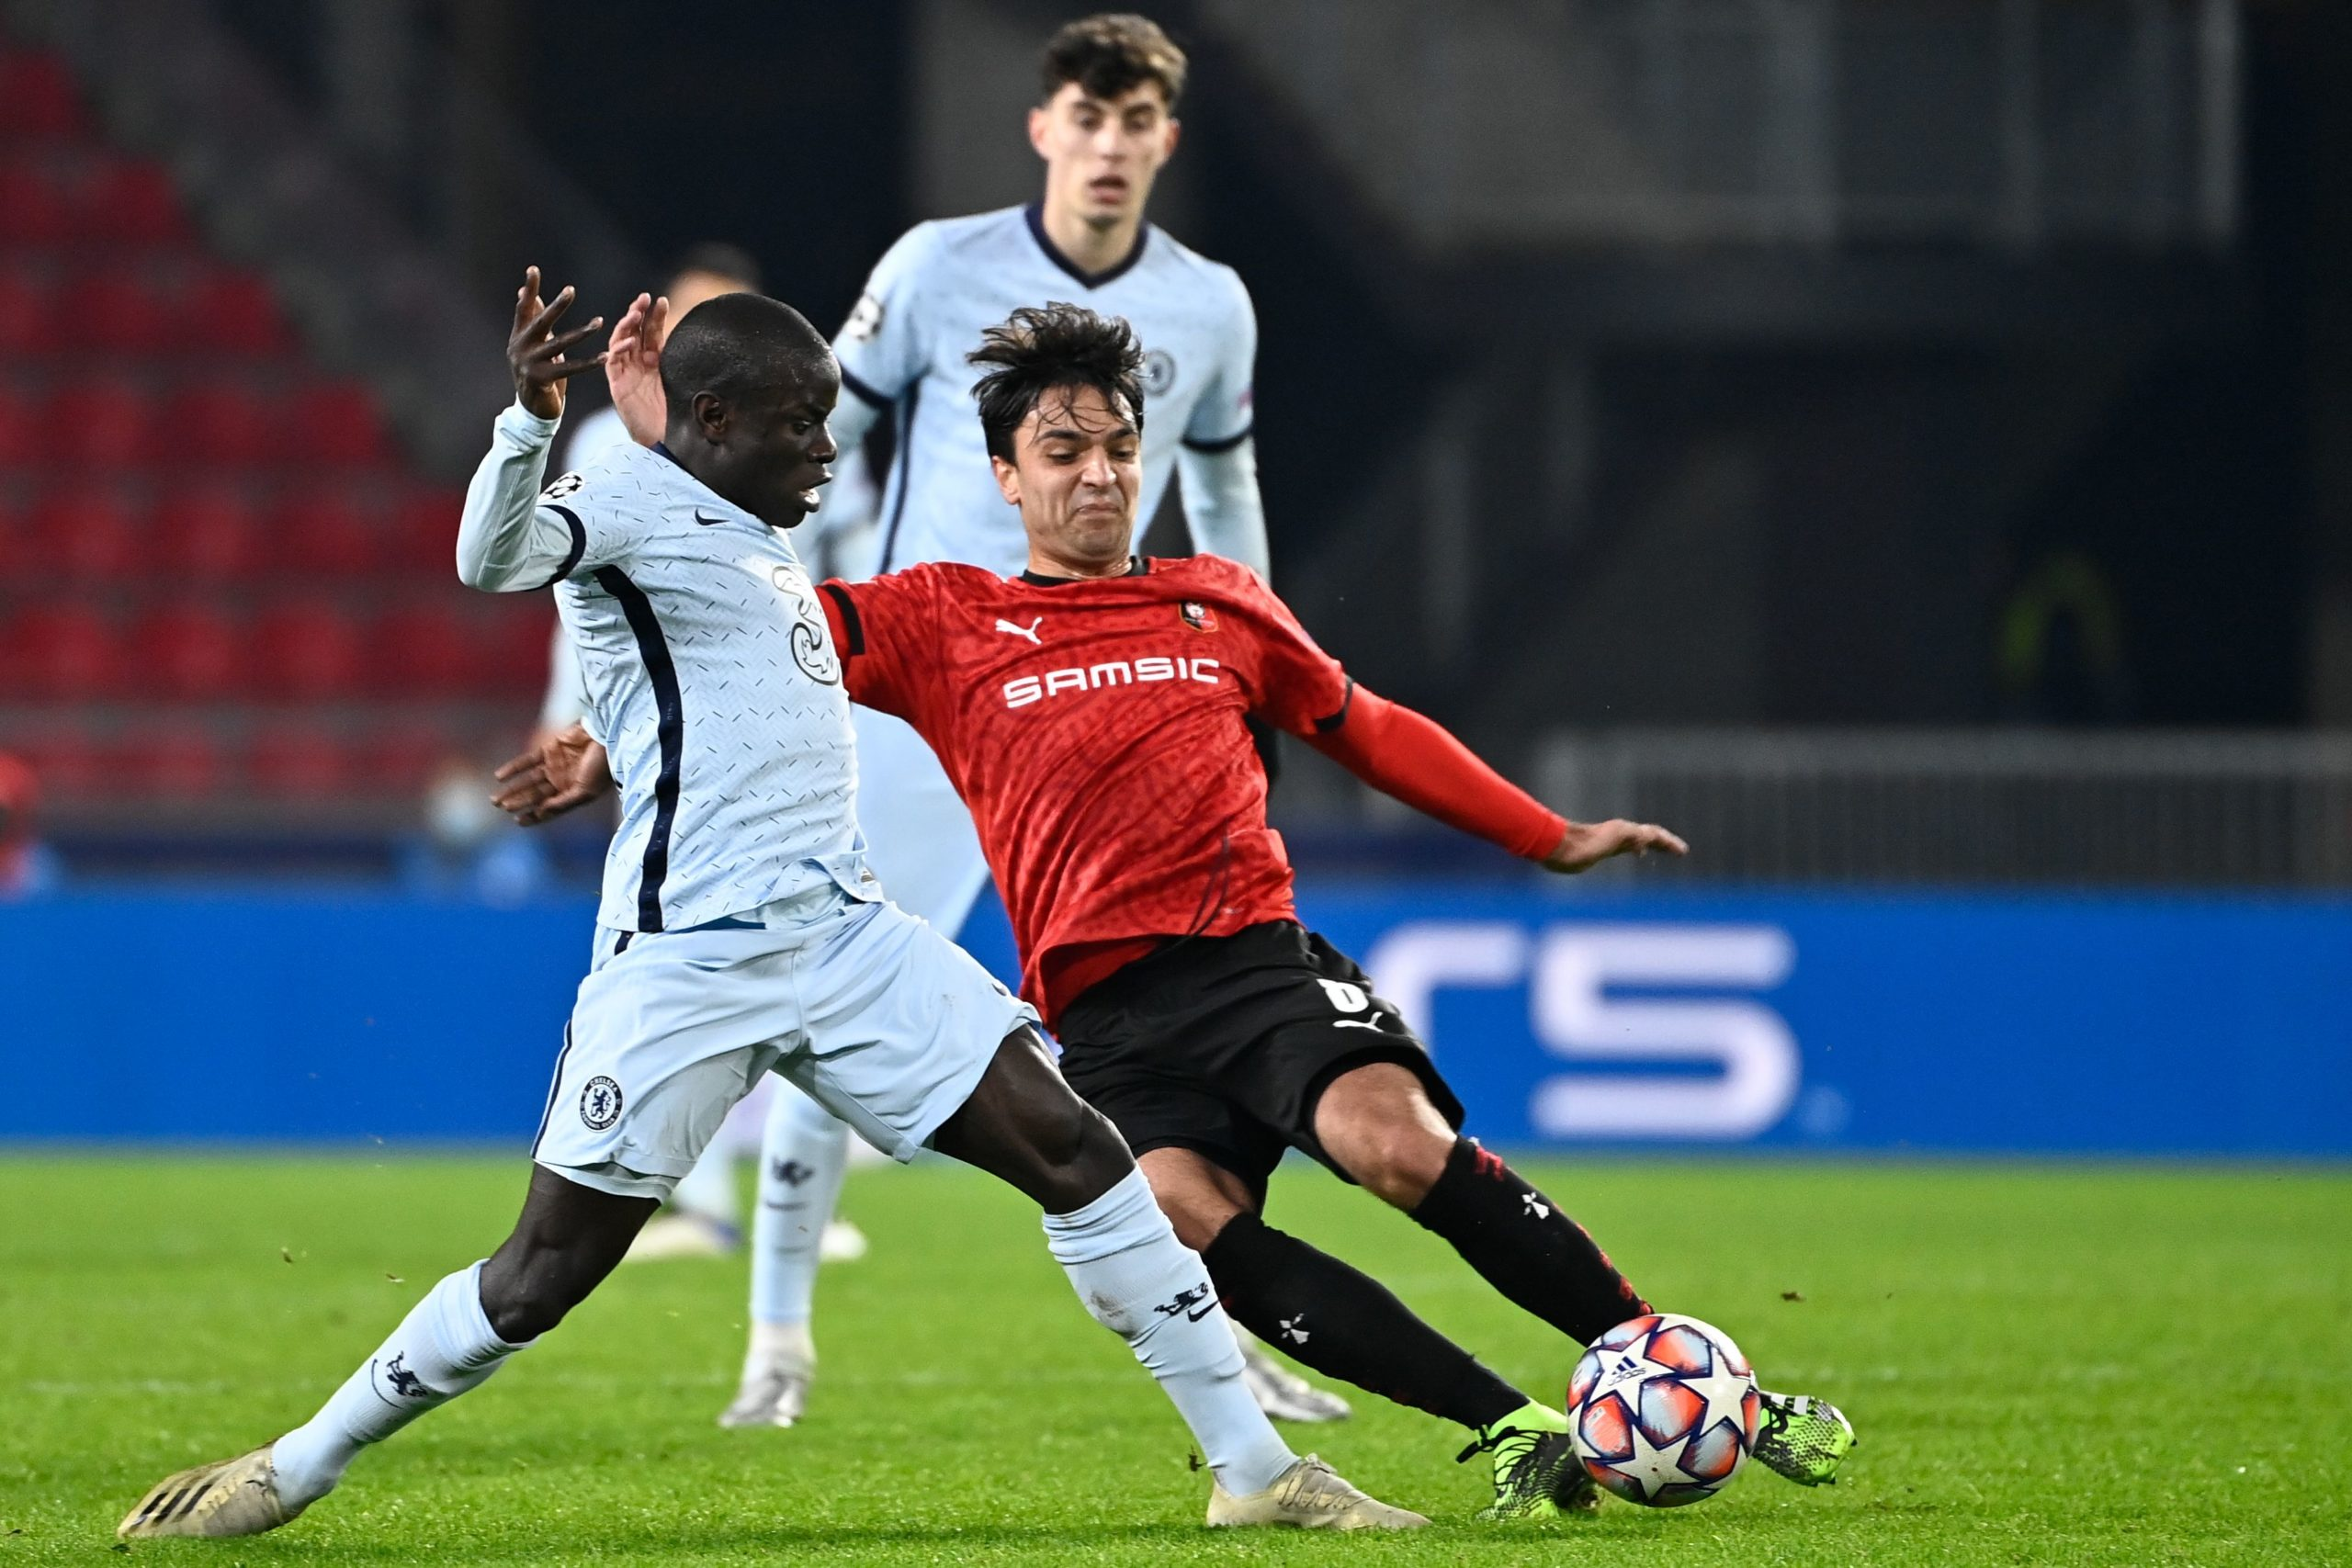 Clément Grenier in action for Rennes